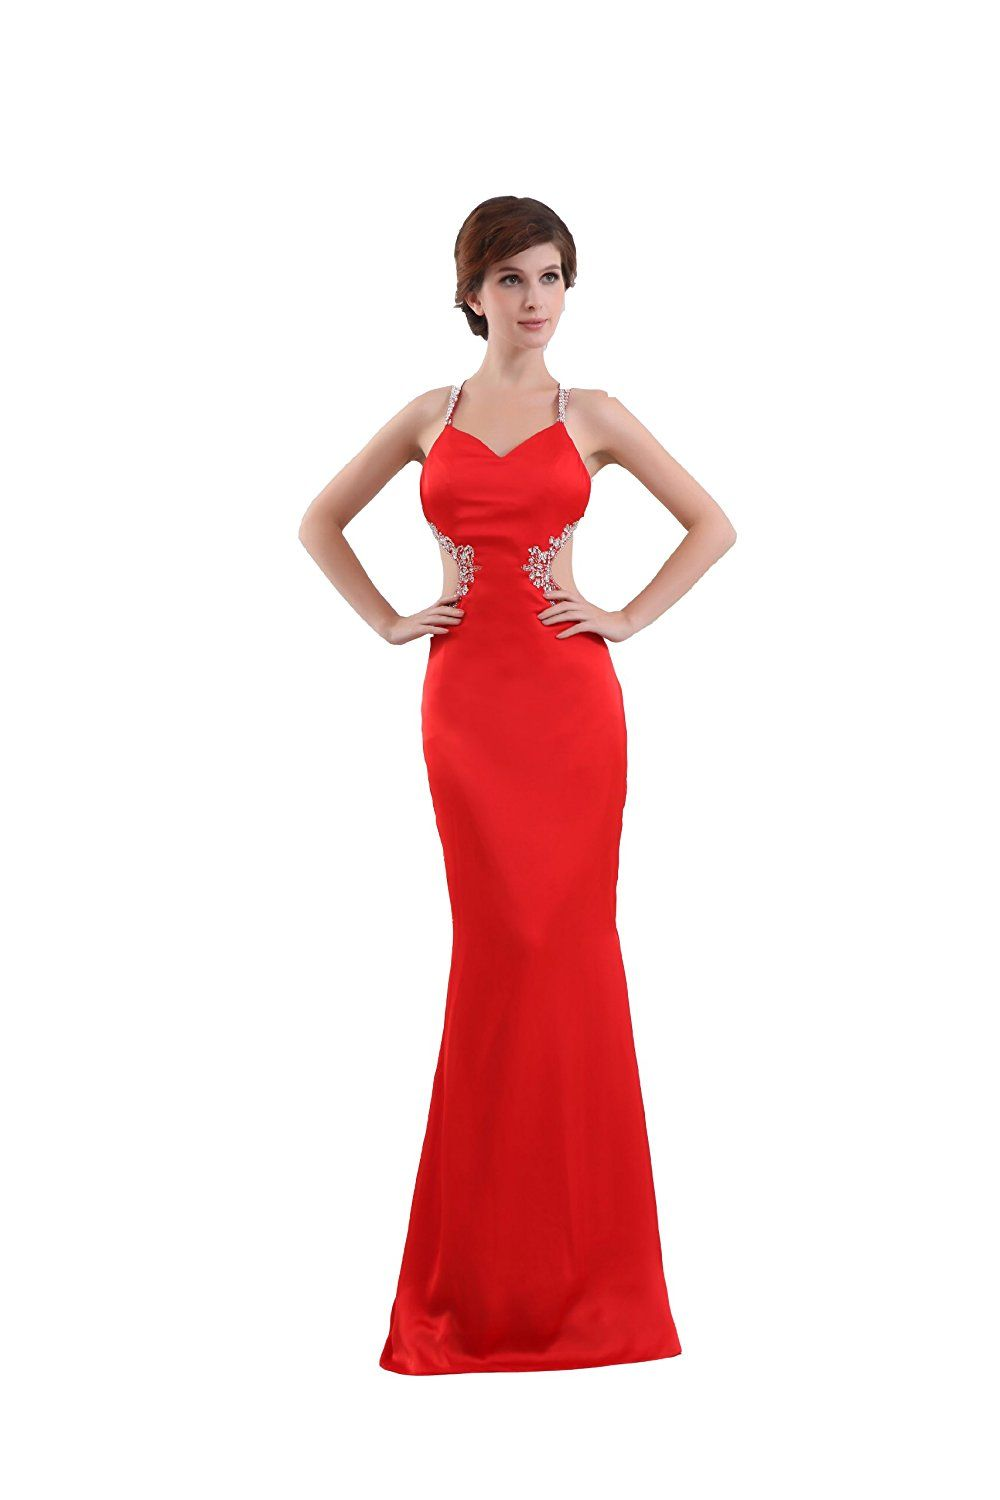 Felaladress red sexy long backless mermaid evening dresses more